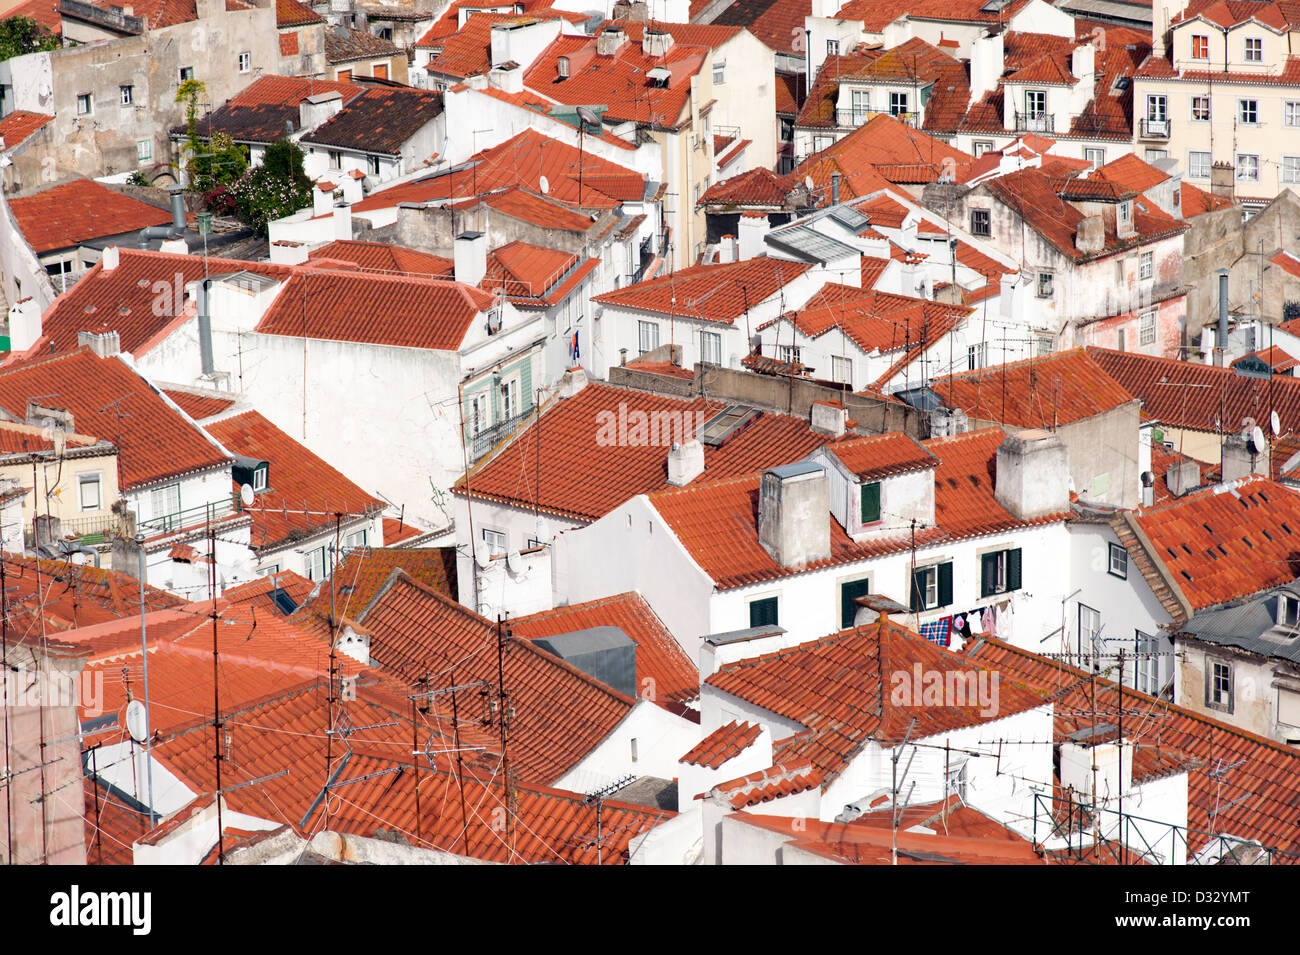 Rooftops of Alfama, Lisbon, Portugal - Stock Image